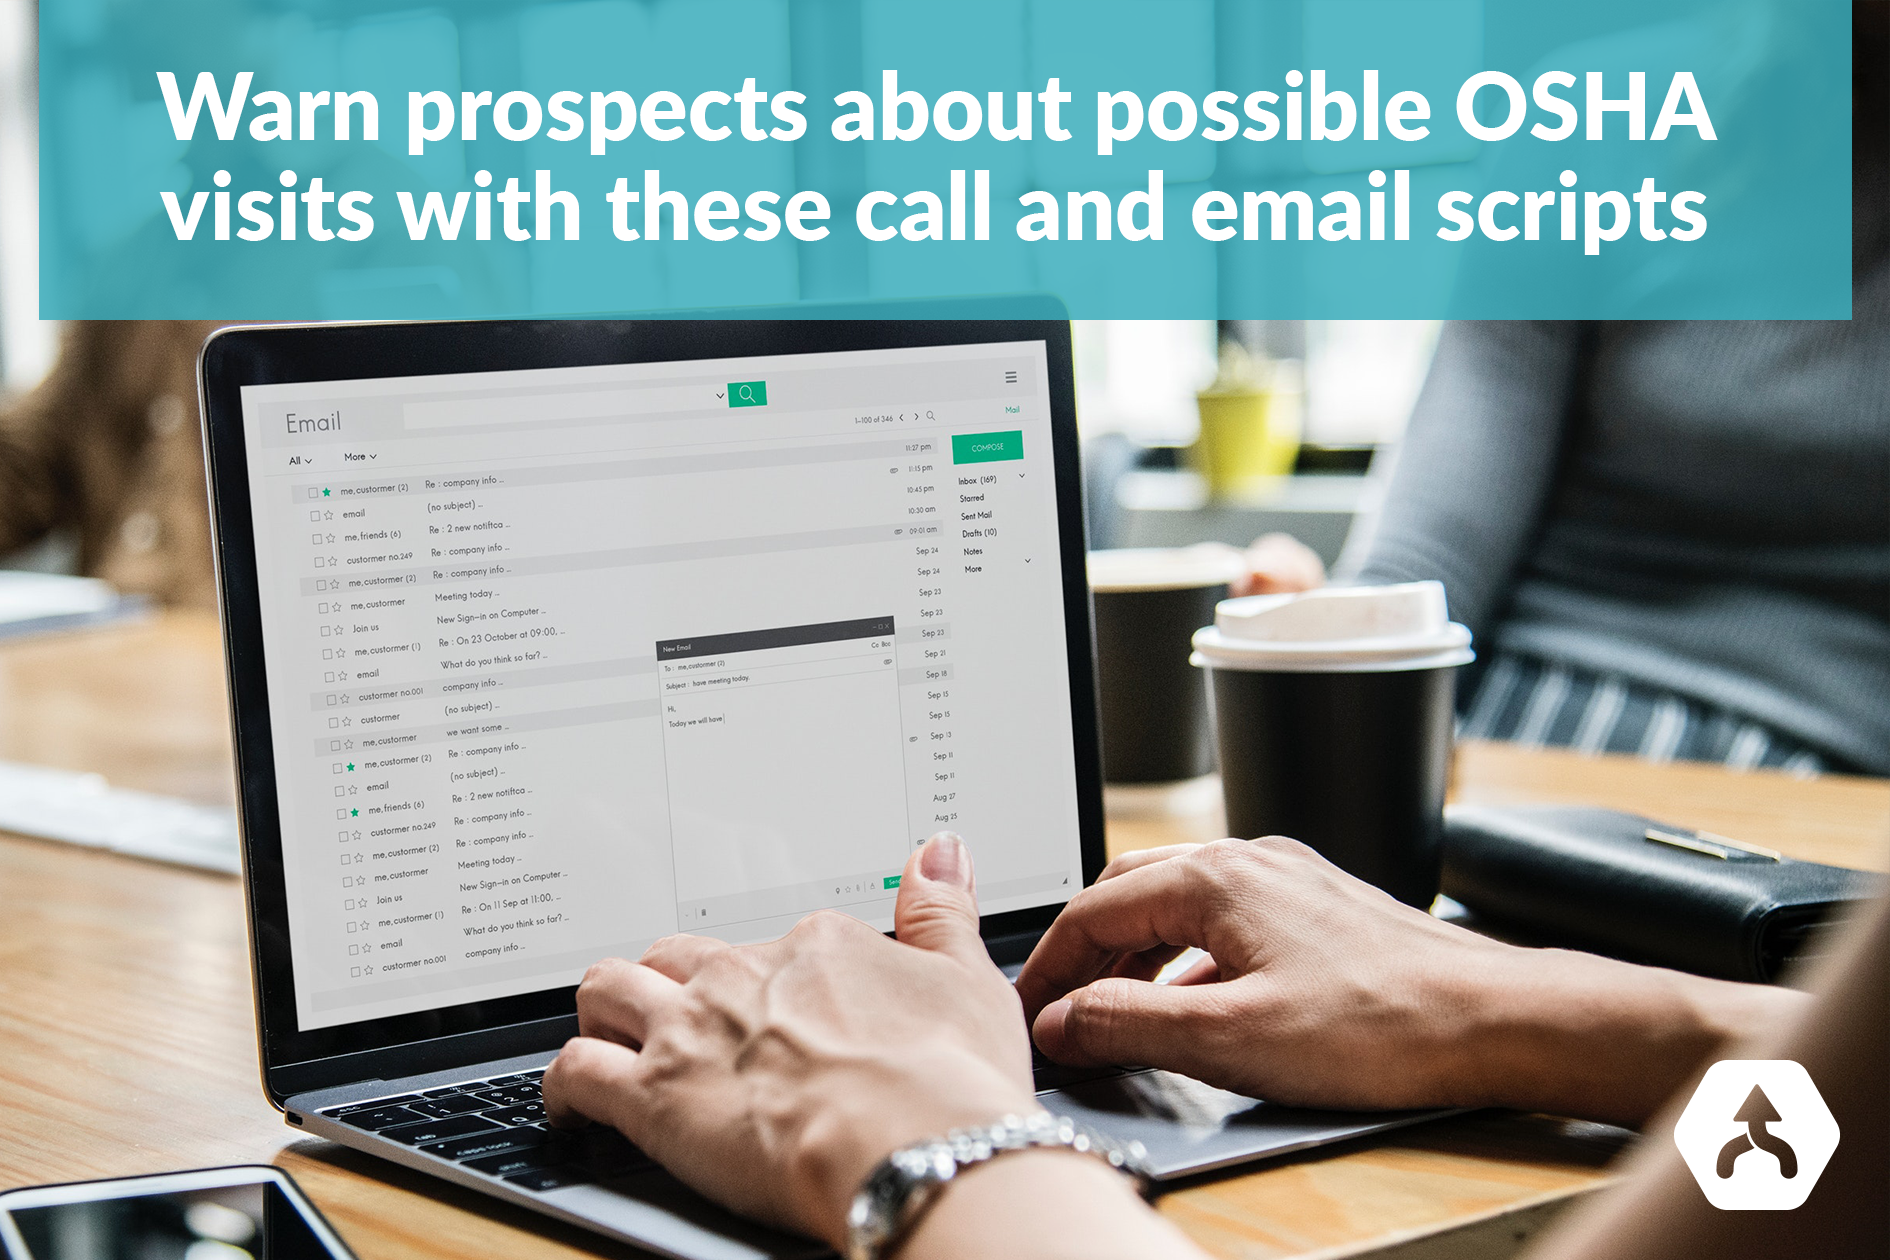 Warn Prospects about the possible OSHA visits with these call and email scripts